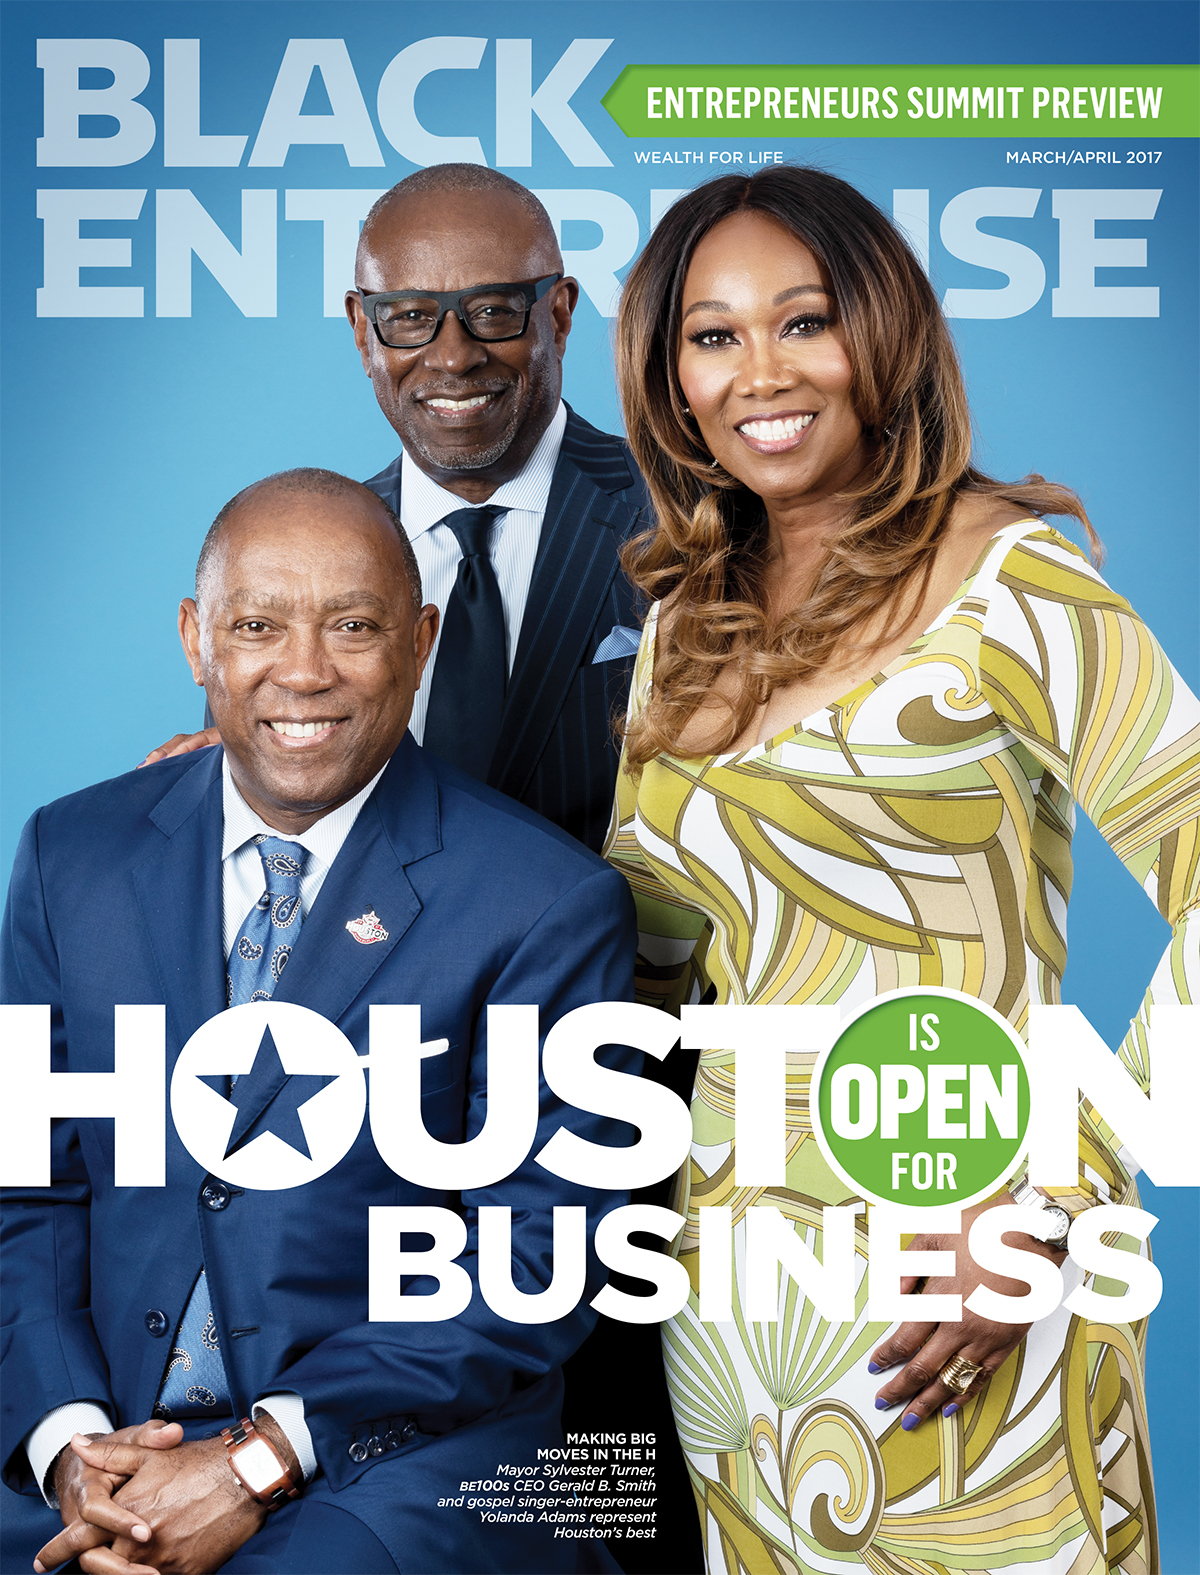 Black Enterprise magazine March/April 2017 issue